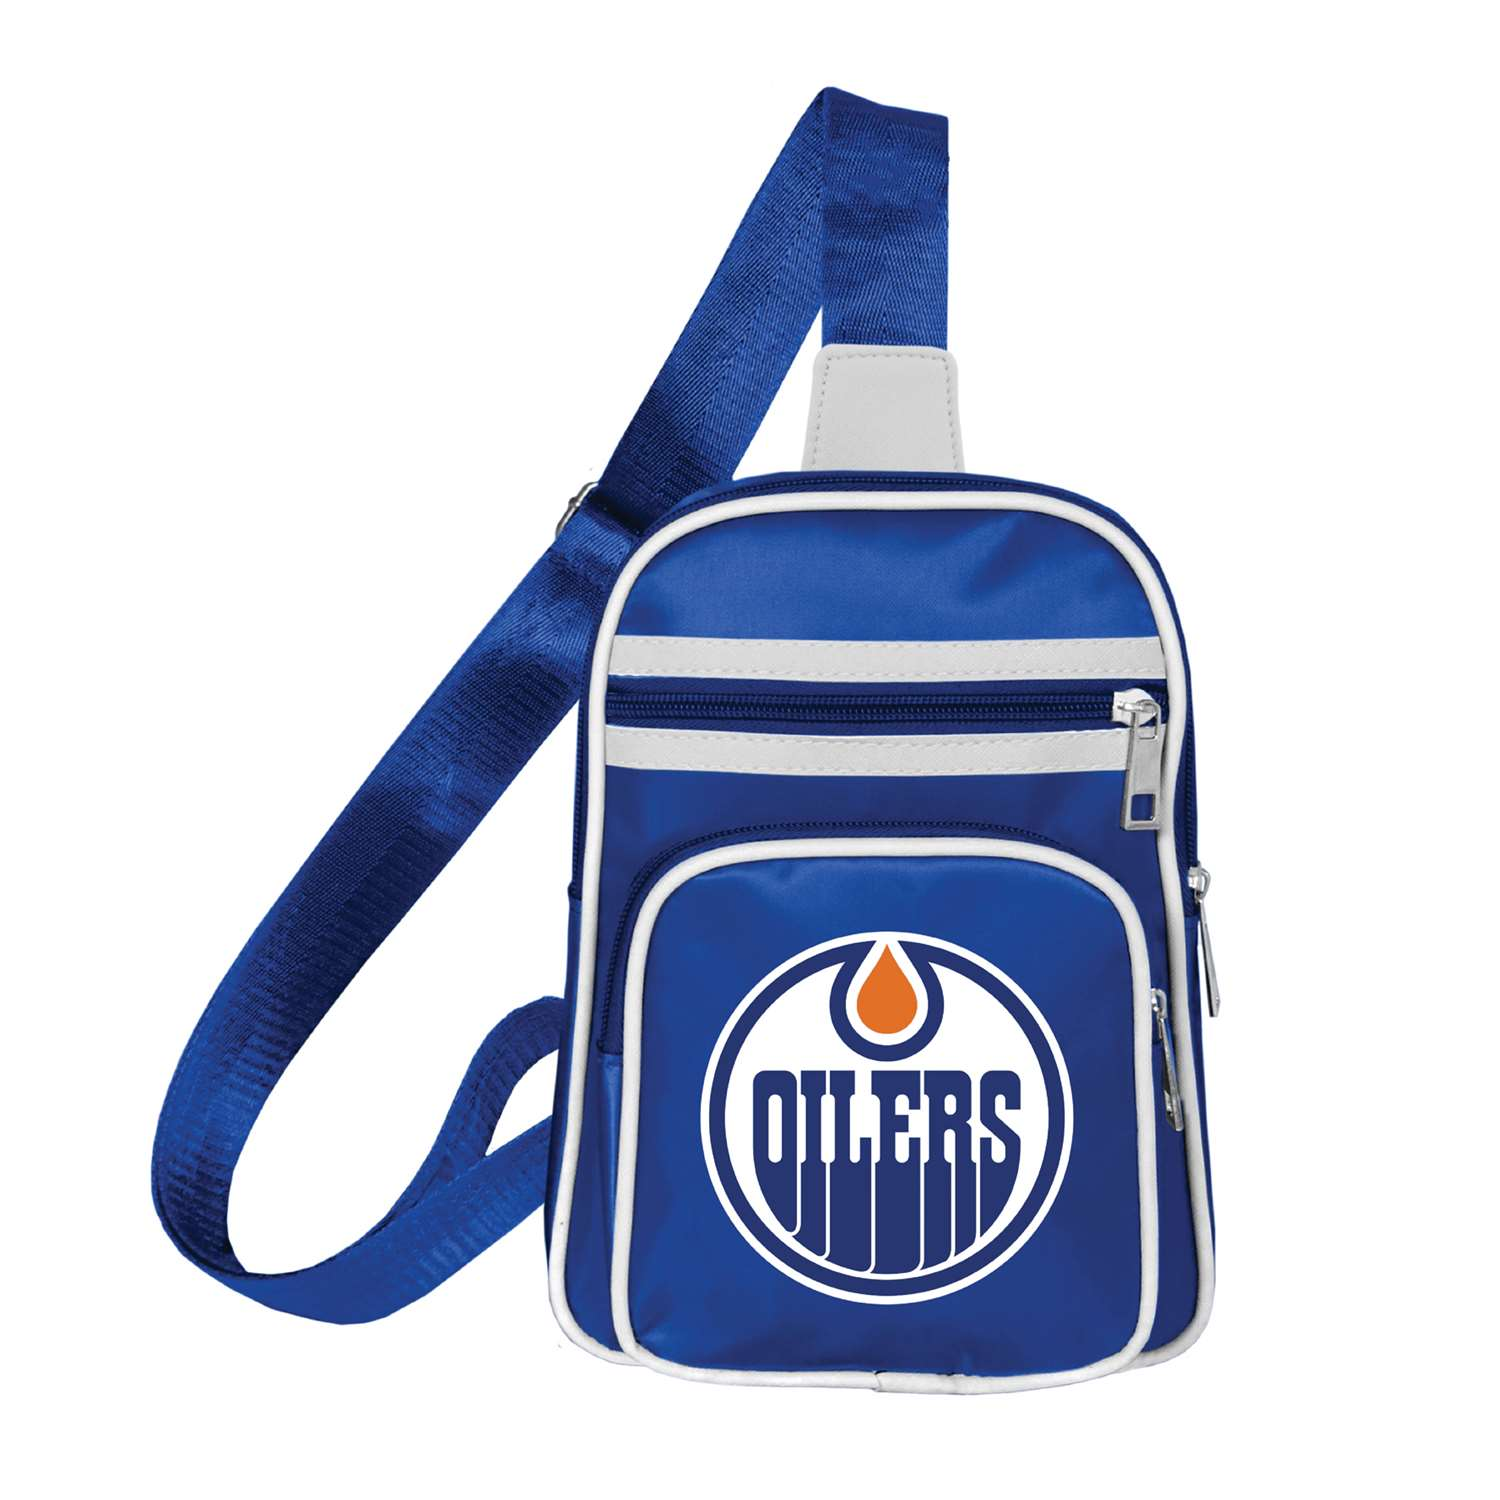 Nhl Hockey Edmonton Oilers Bath - 500650-oilr - Edmonton Oilers Mini Cross 500650-OILR